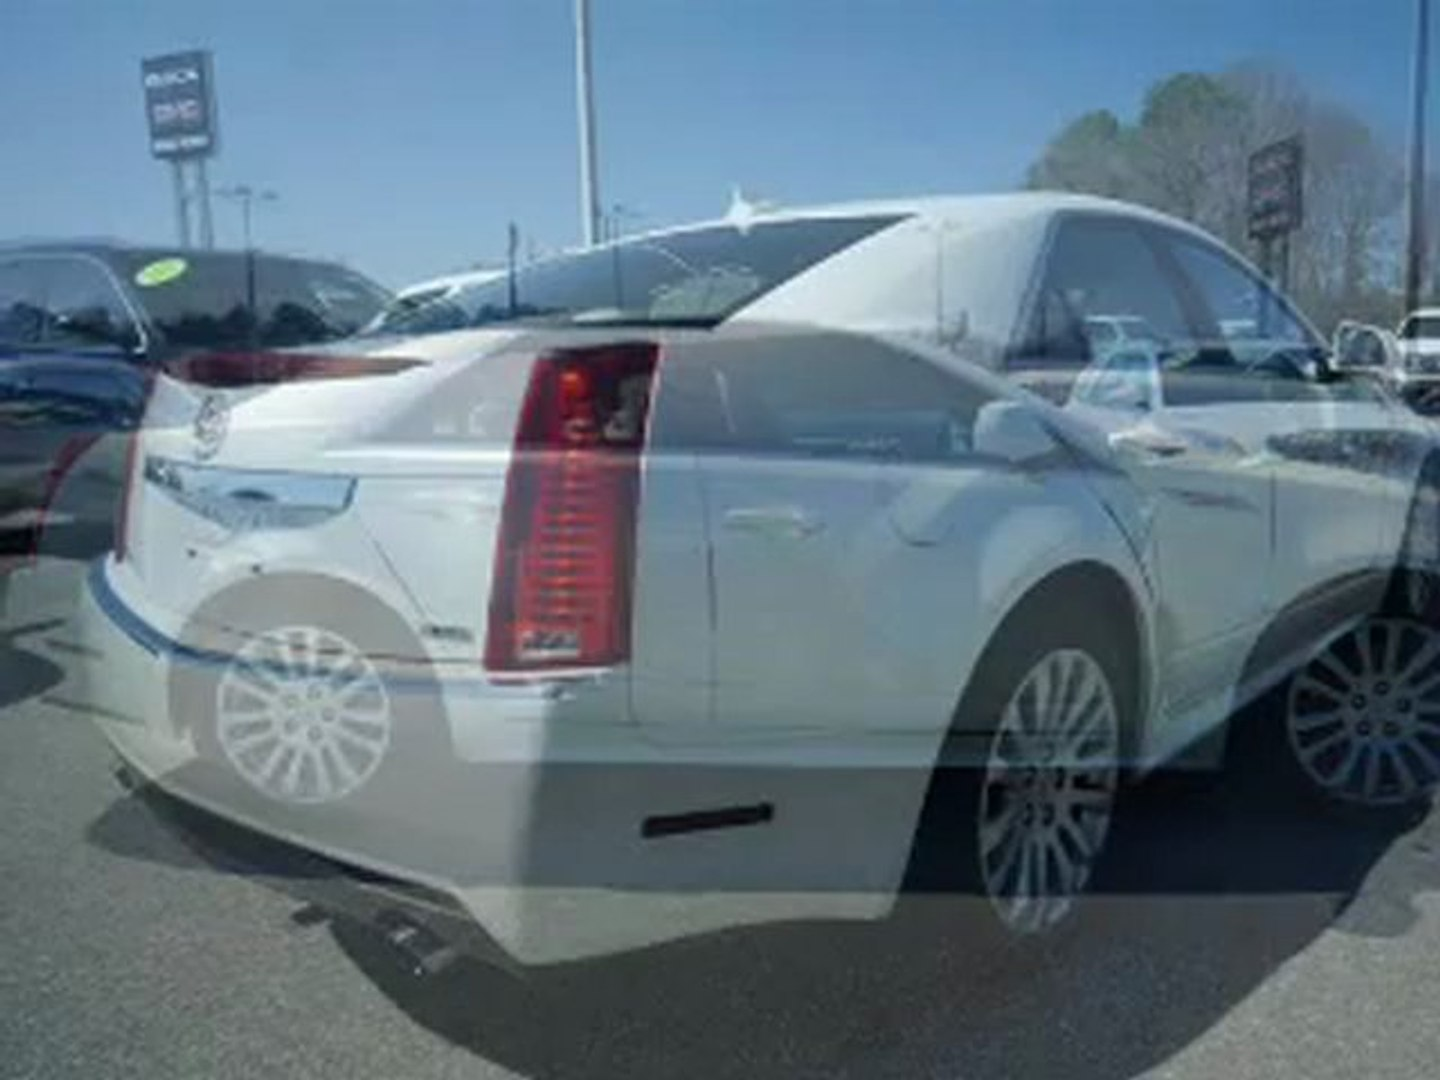 2010 Cadillac CTS Goldsboro NC - by EveryCarListed.com